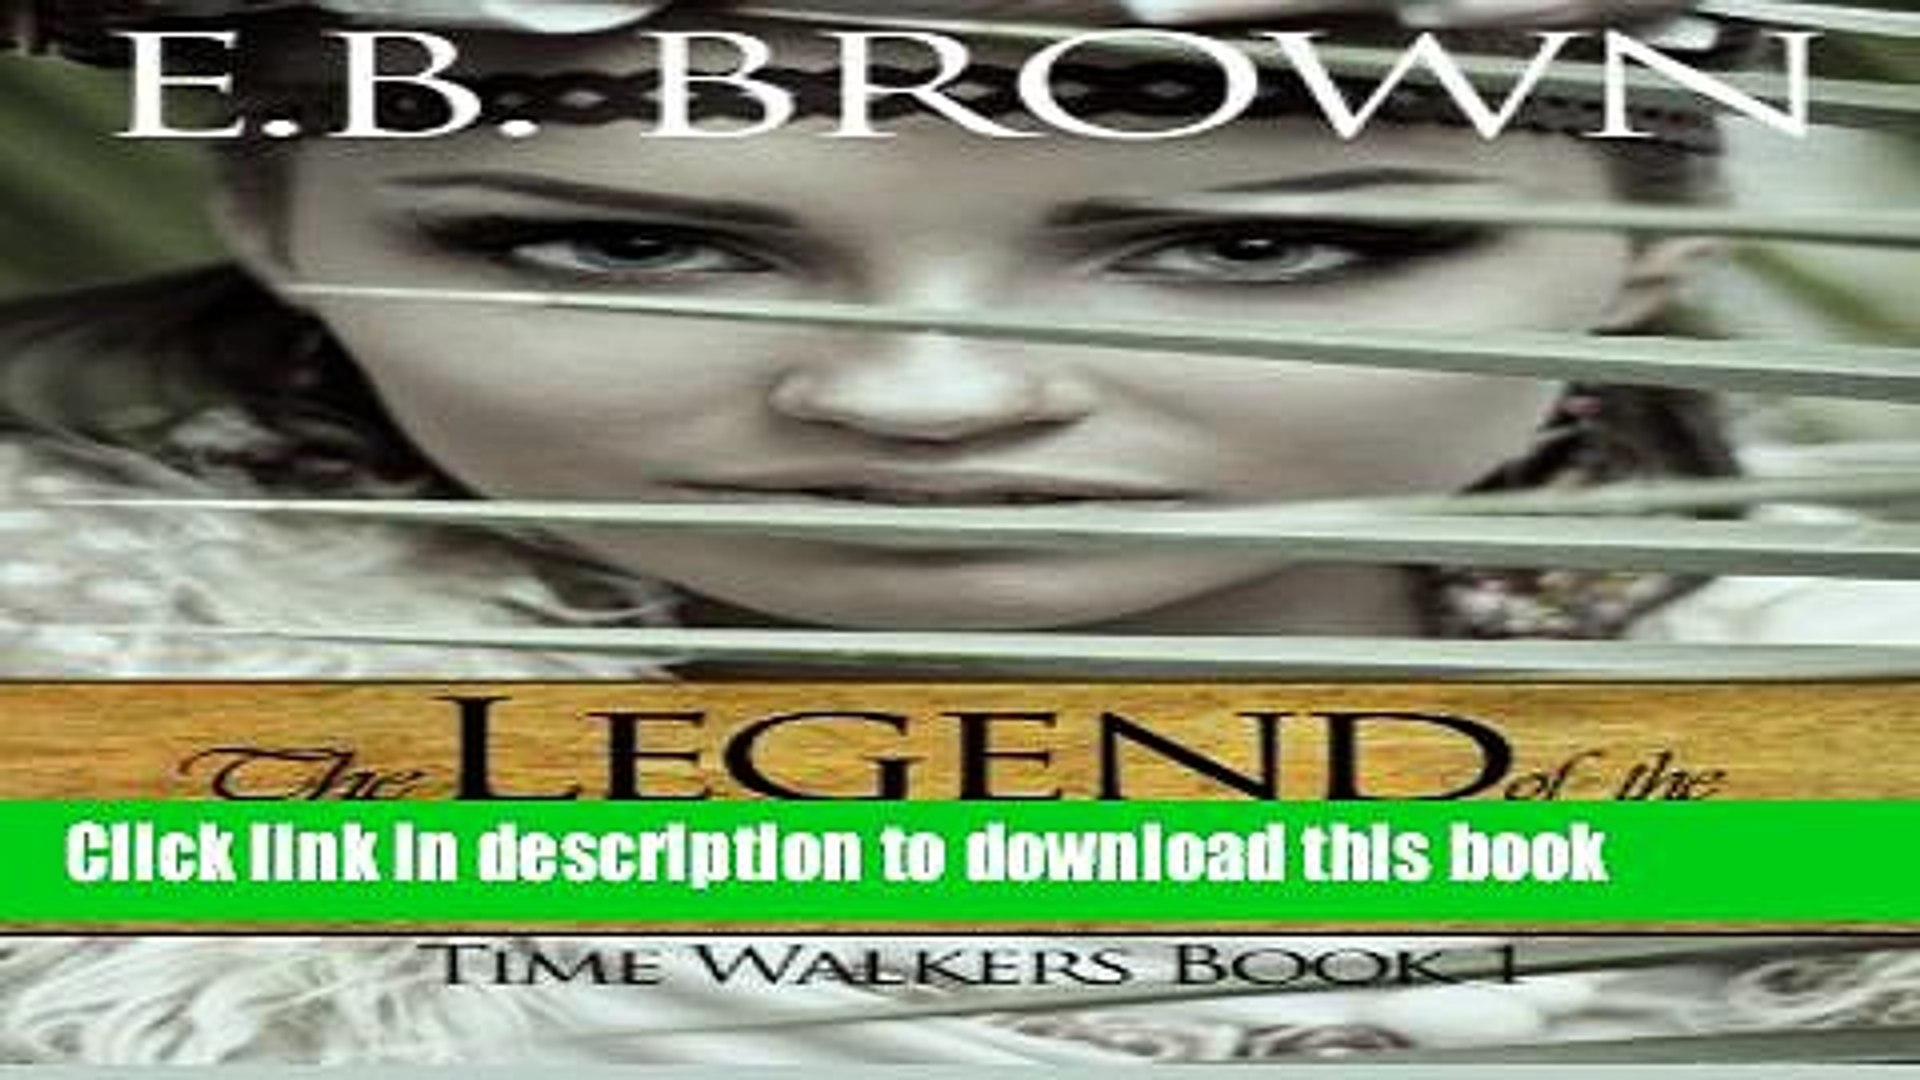 [PDF] The Legend of the Bloodstone (Time Walkers) (Volume 1) Full Textbook